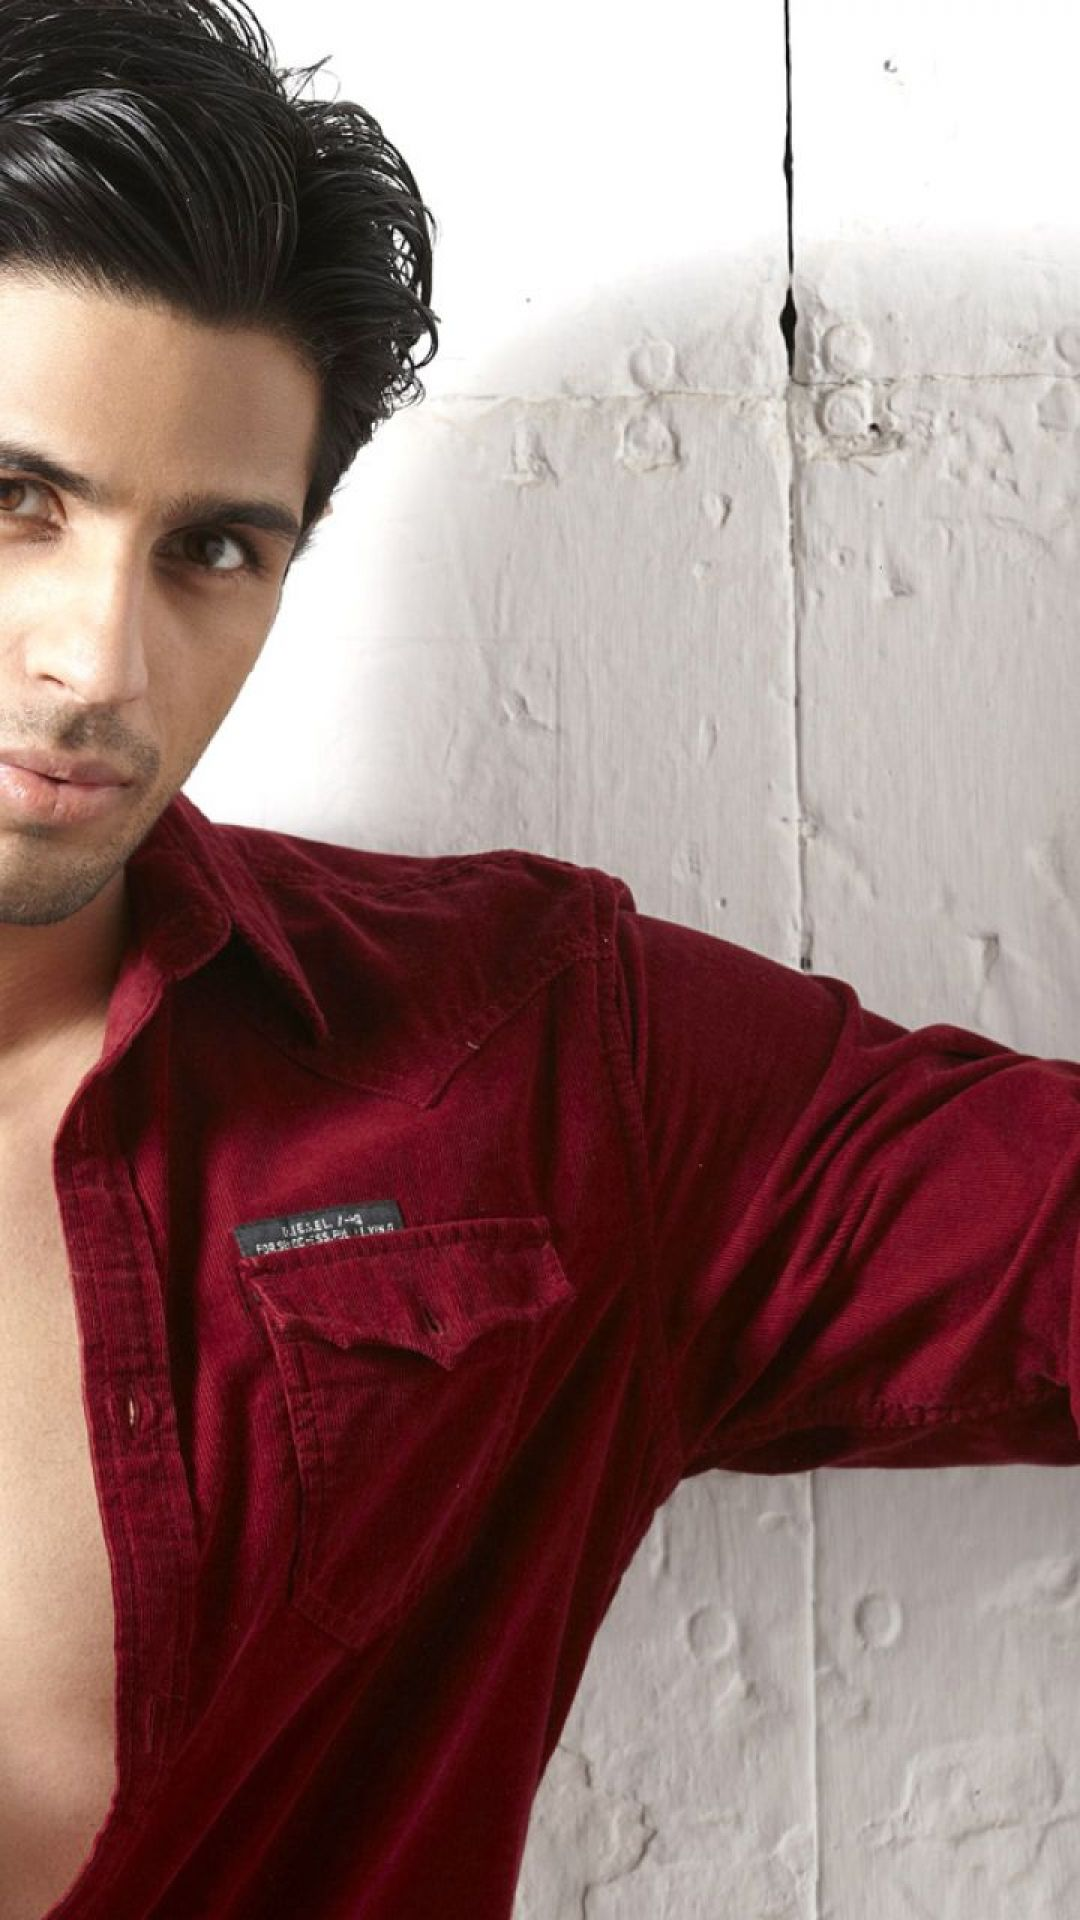 Sidharth Malhotra - Android, iPhone, Desktop HD Backgrounds / Wallpapers (1080p, 4k) (185281) - Celebrities